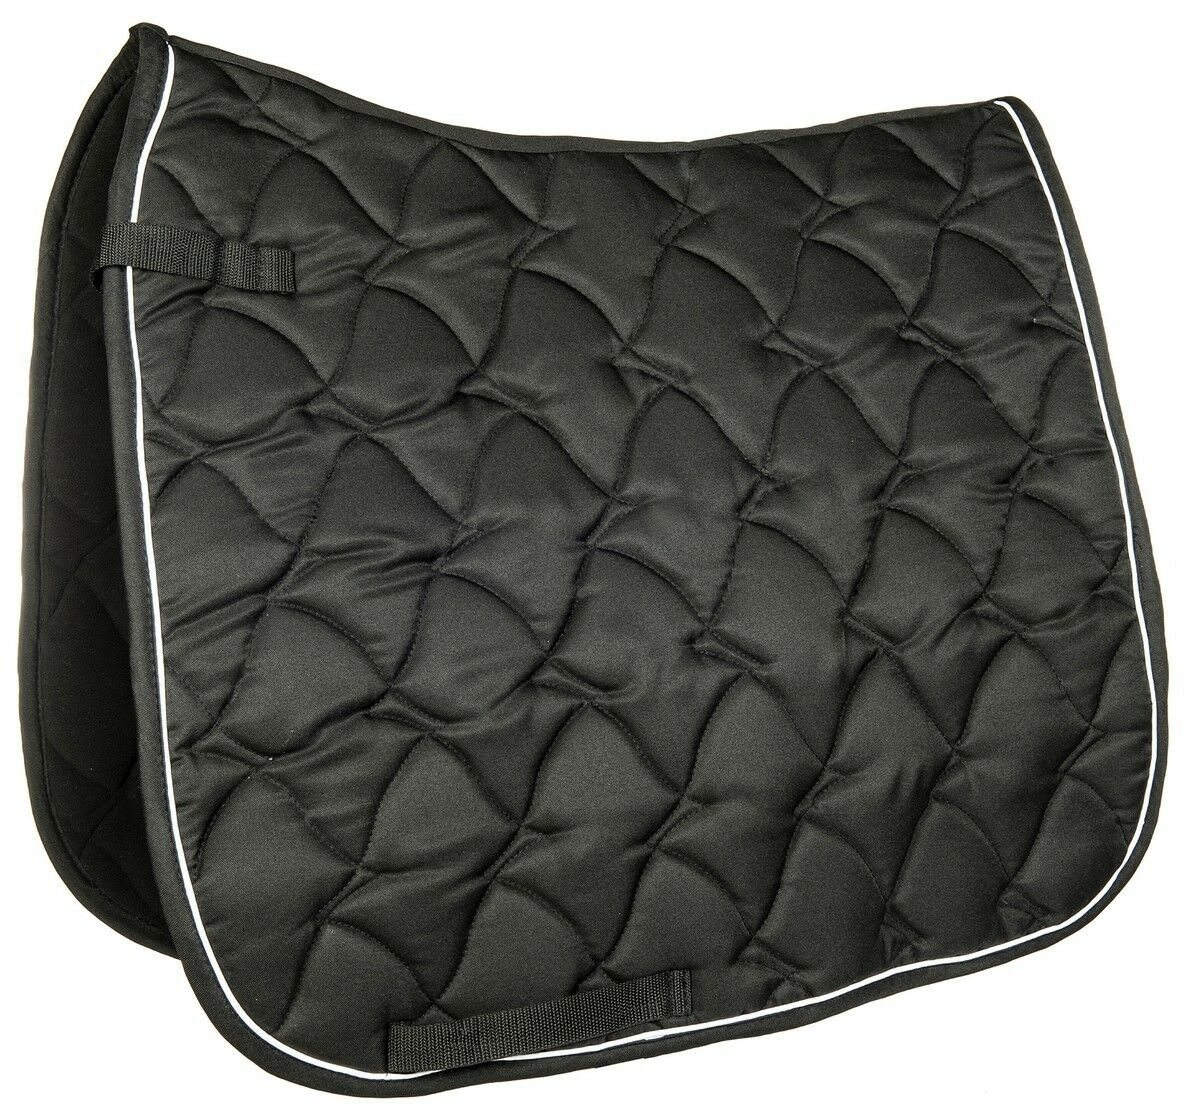 HKM Horse Riding Saddle Cloth Mr Feel Warm 5 degrees extra warmth ALL SIZES